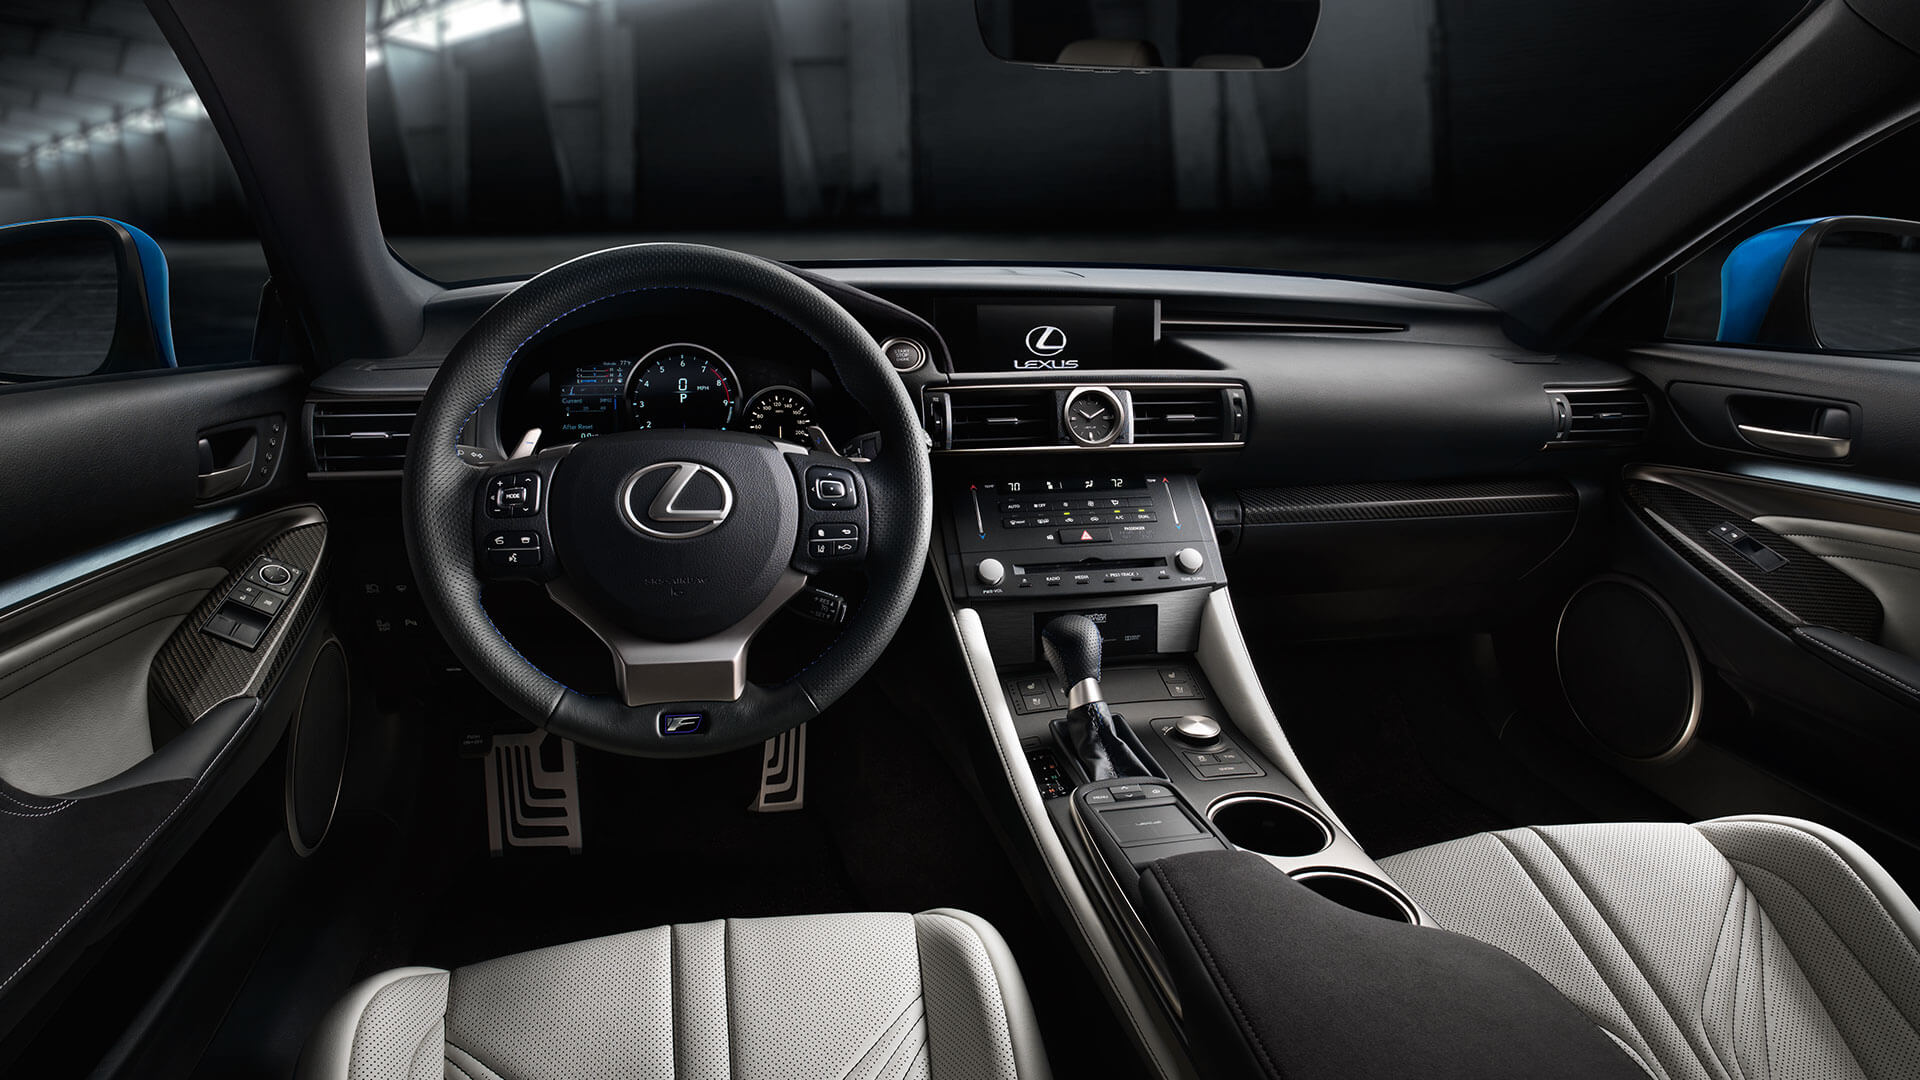 2017 lexus rc f gallery 010 interior